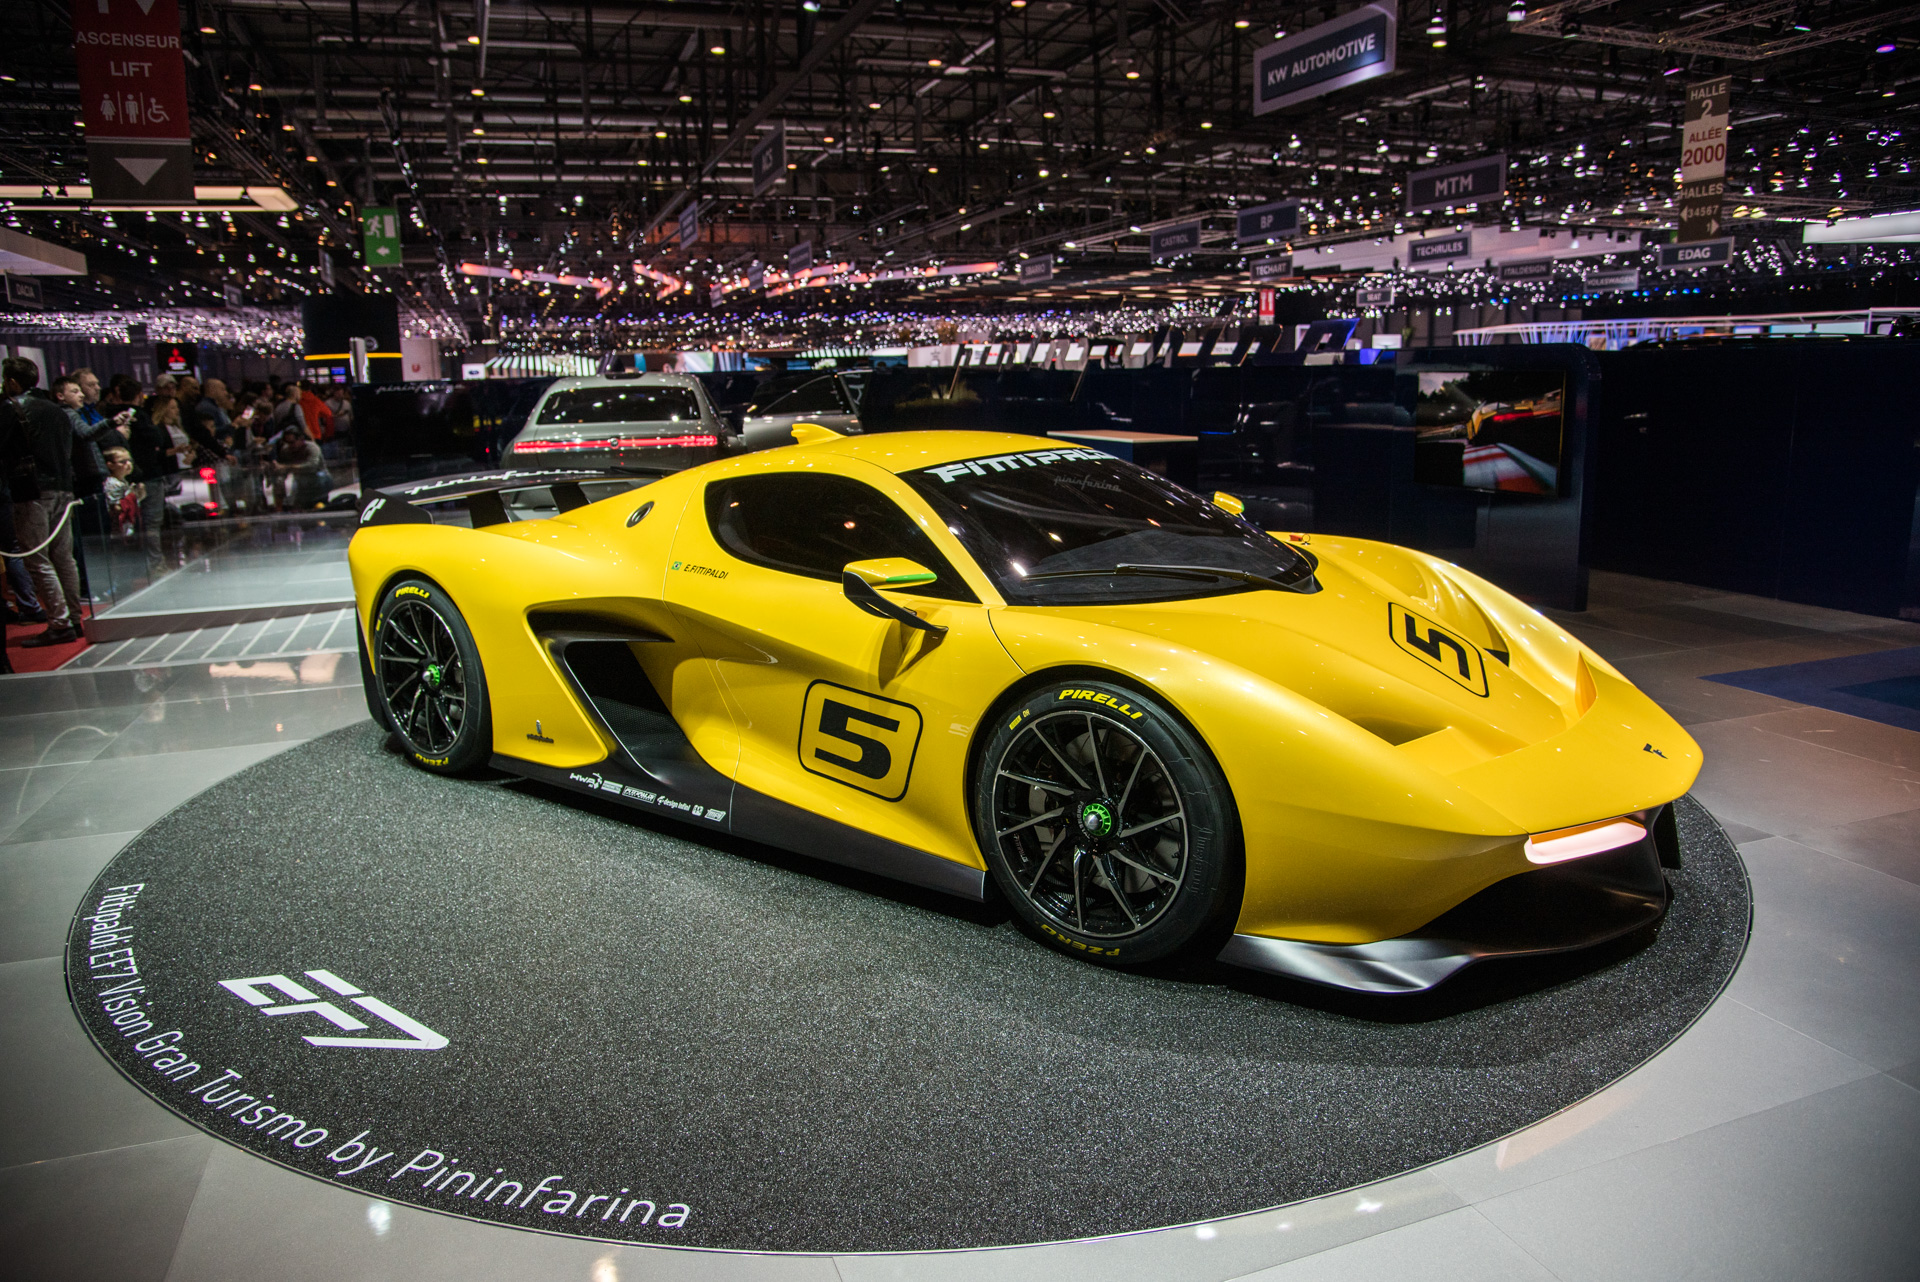 geneva-international-motor-show-igor-sinitsin-123